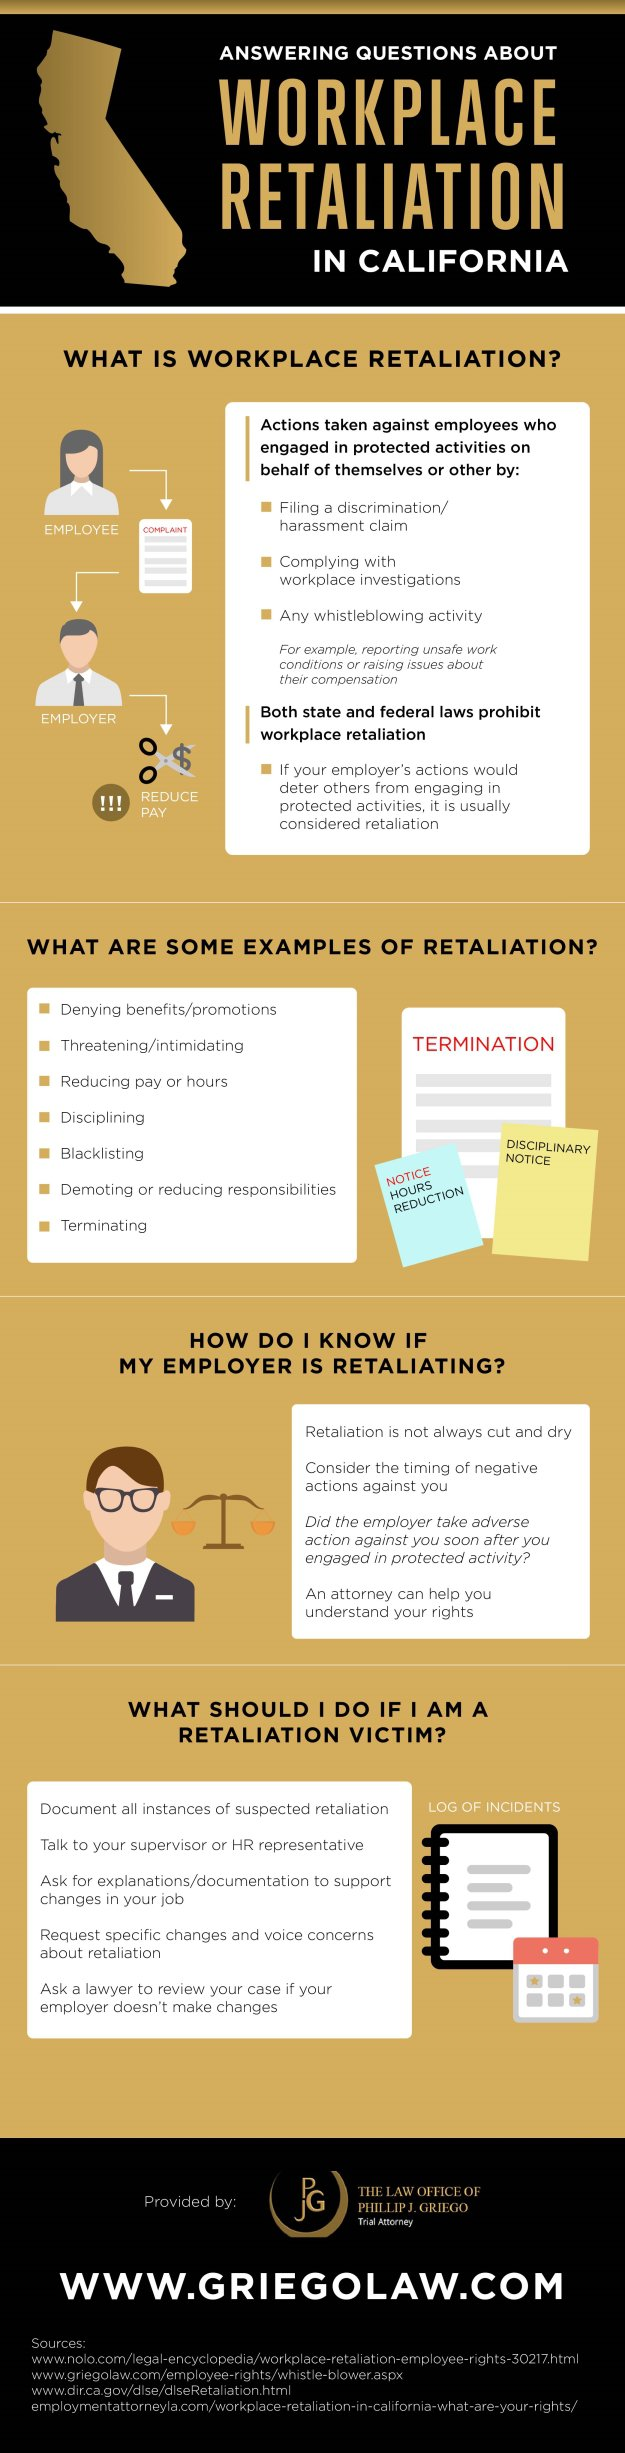 workplace-retaliation-info